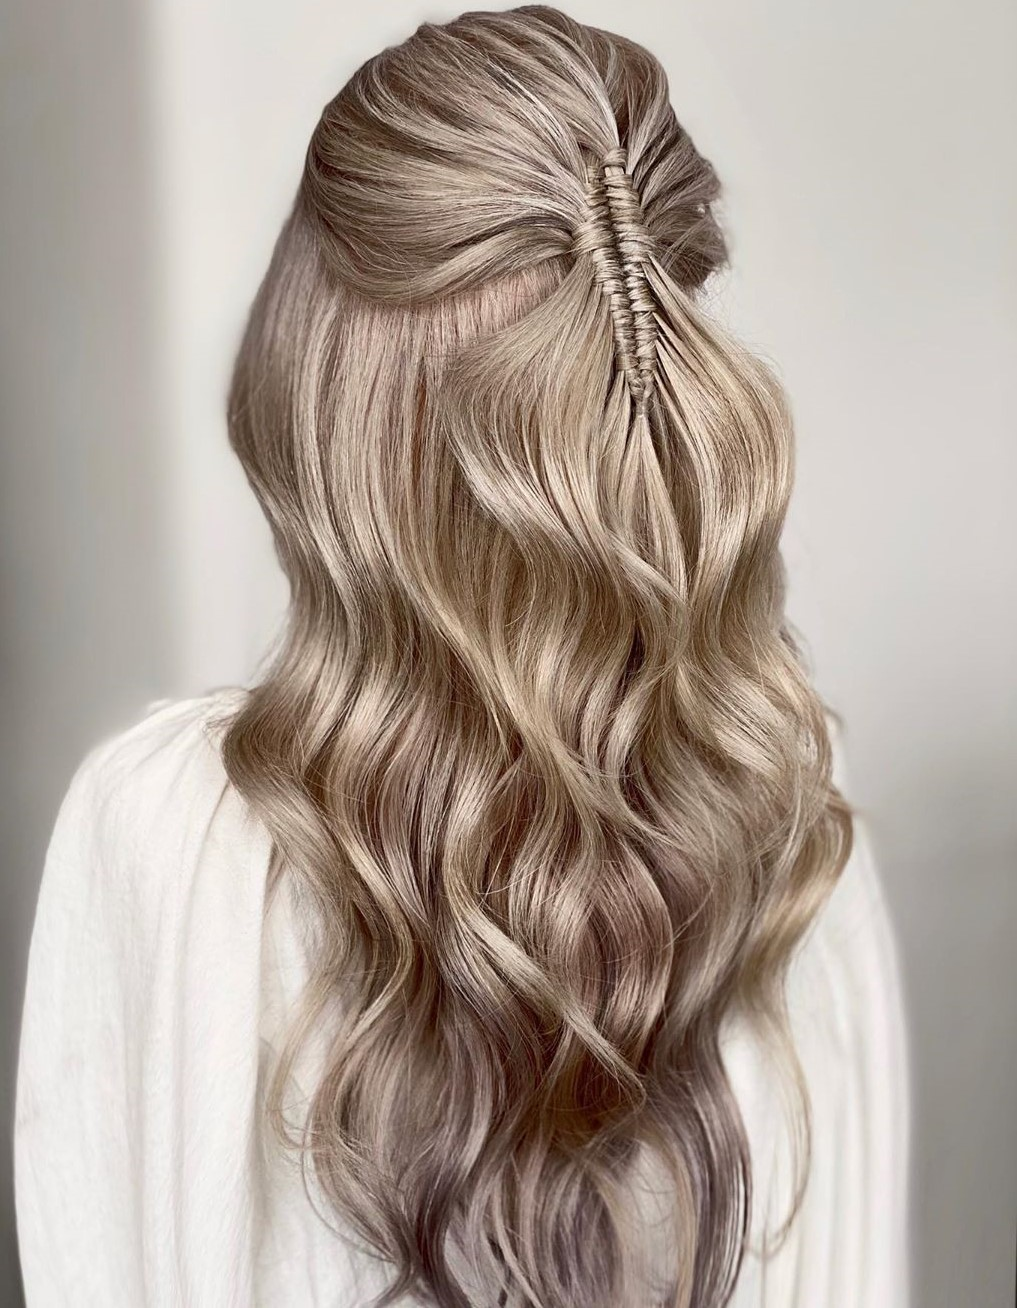 Half Up Hair with a Fishtail